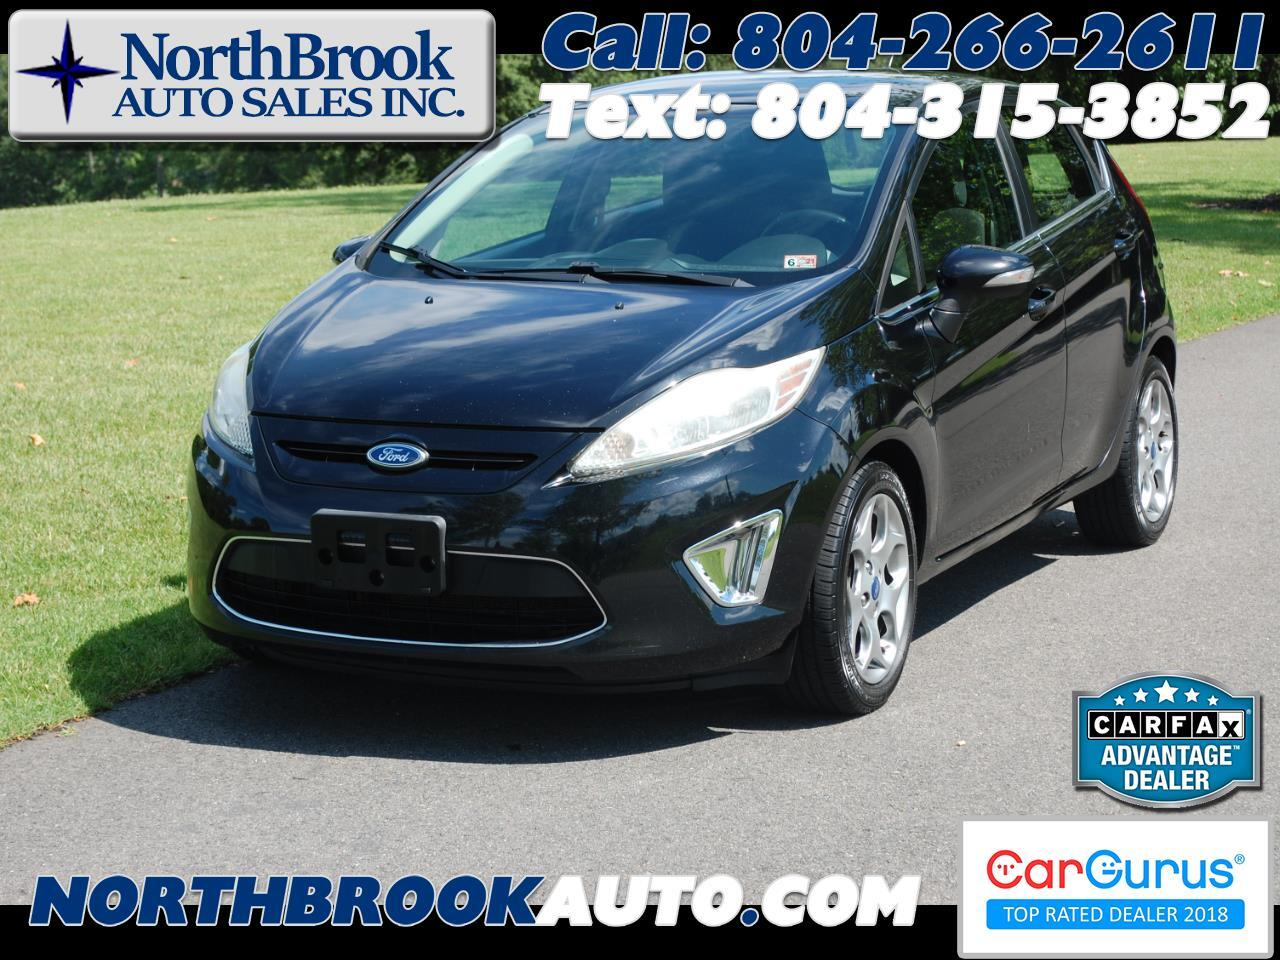 Ford Fiesta 5dr HB SES 2012